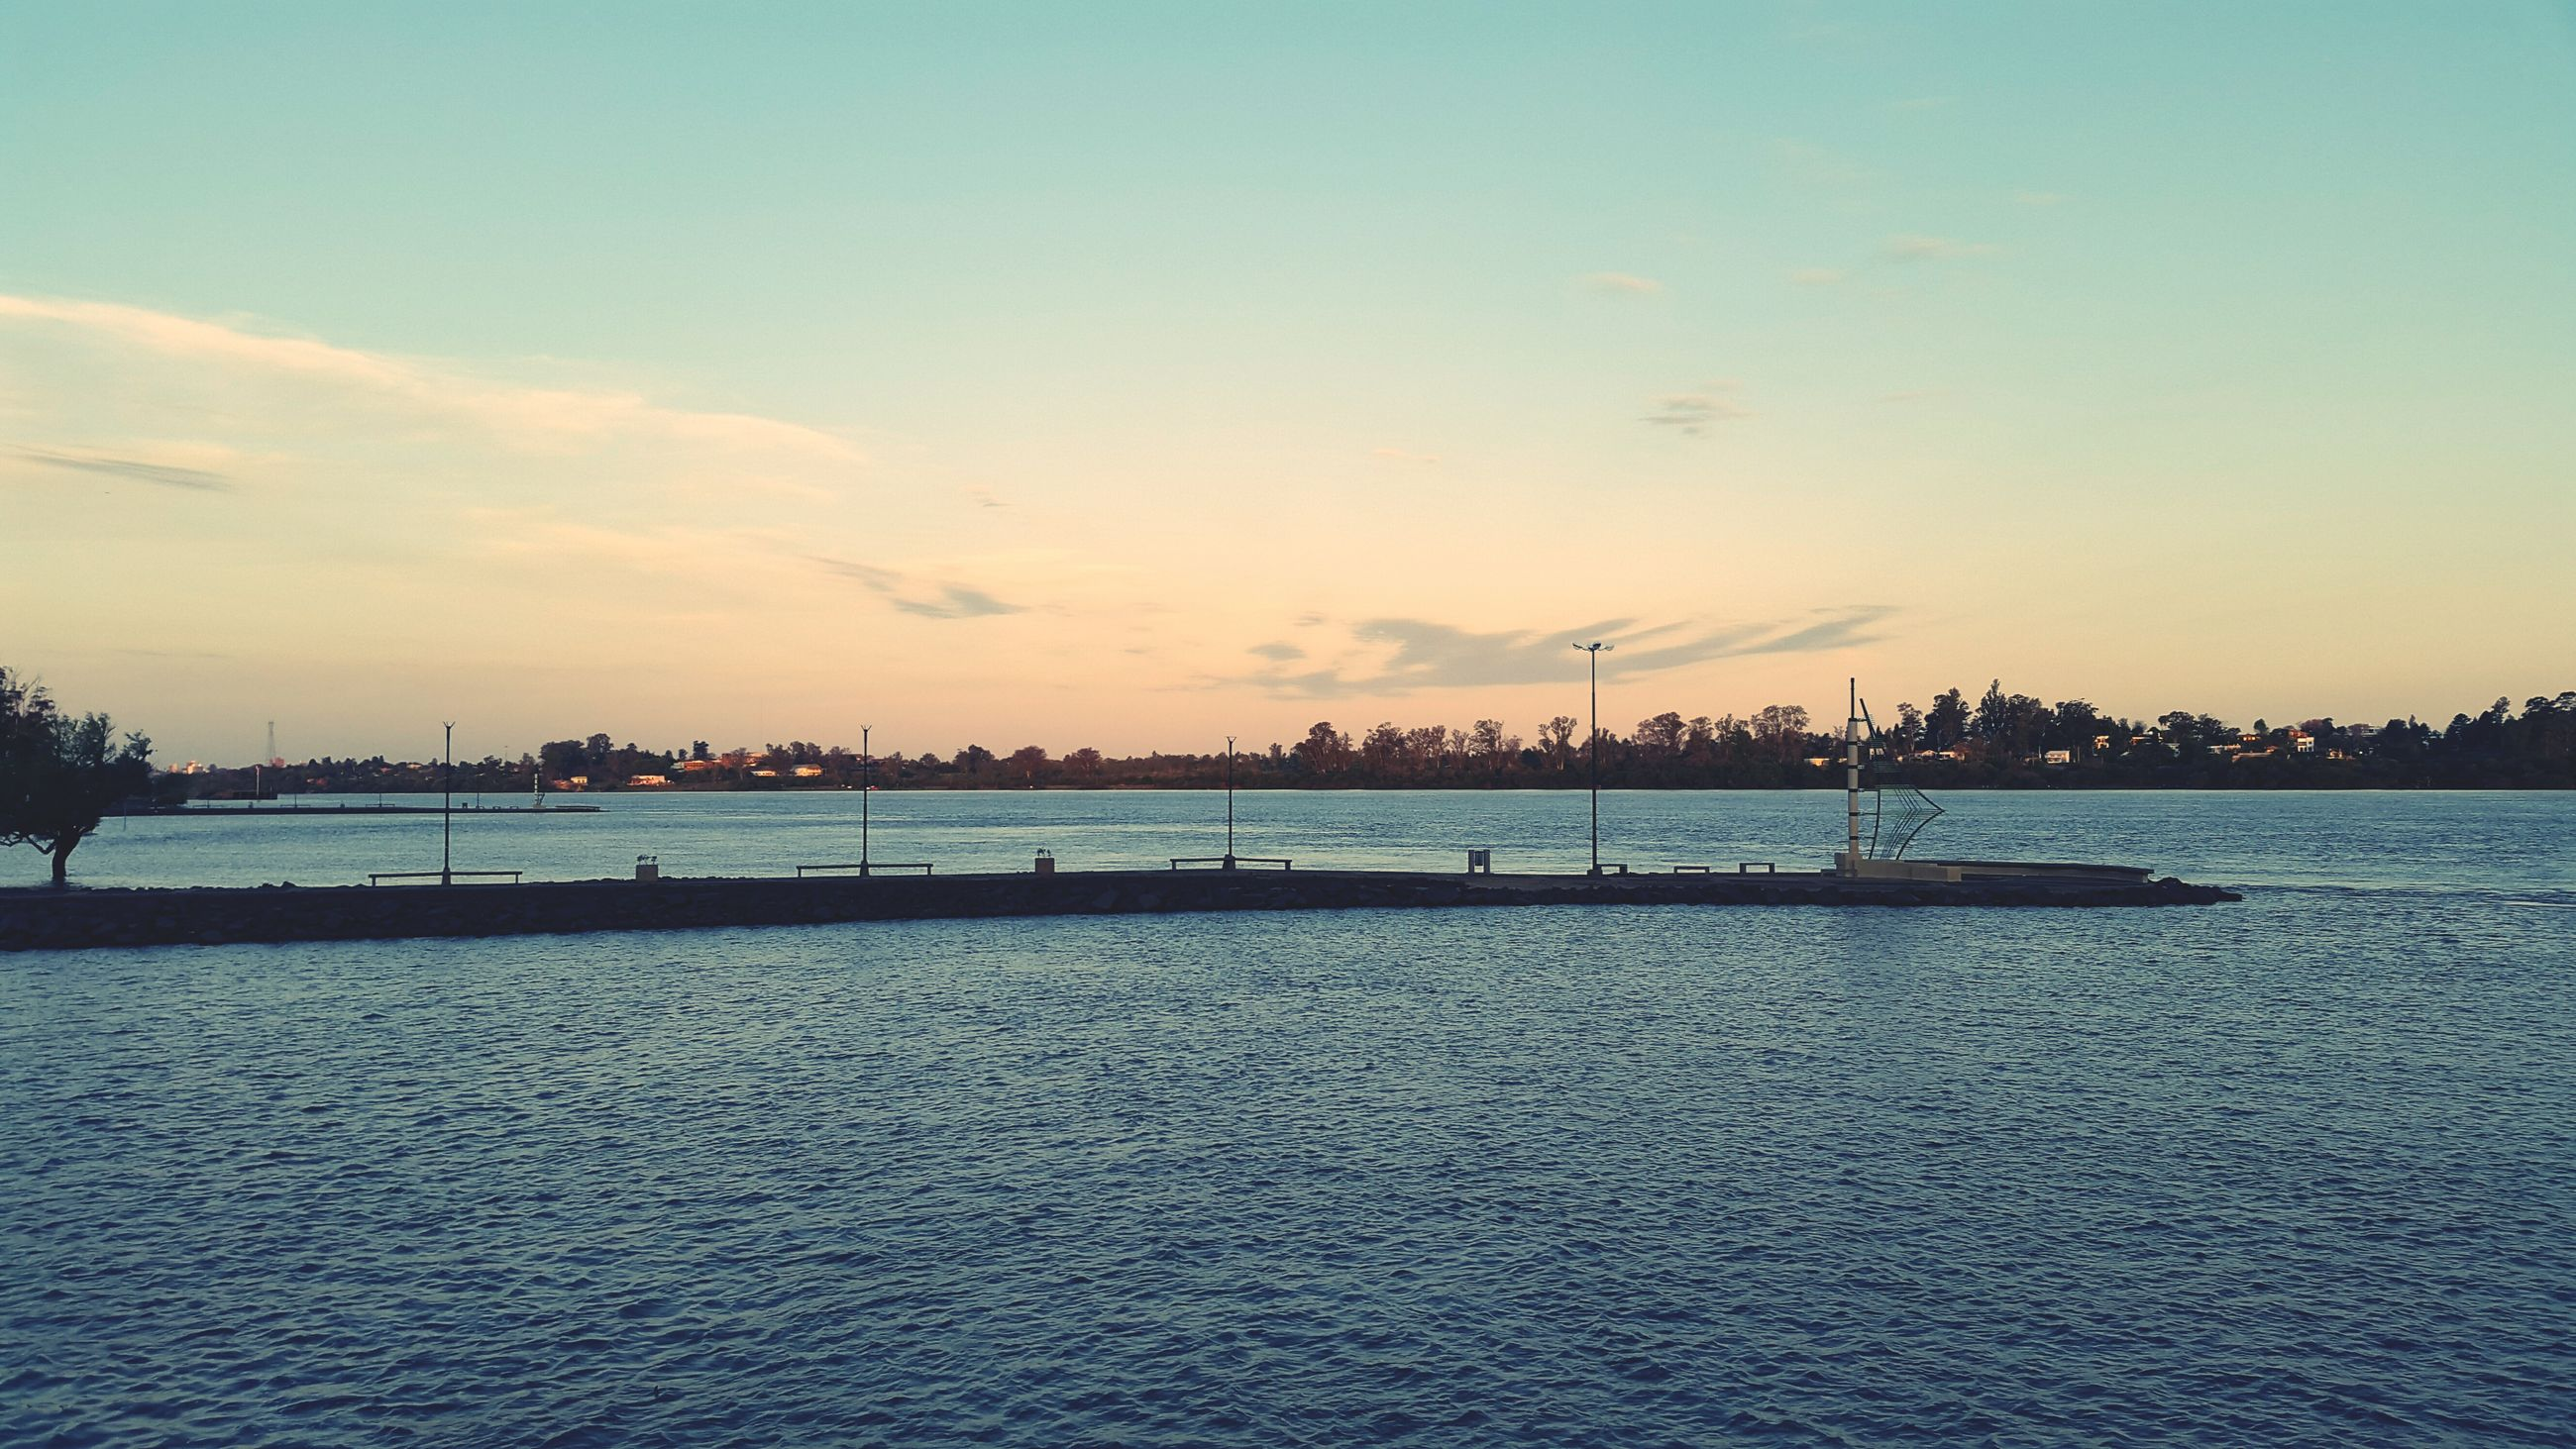 water, sunset, waterfront, tranquil scene, tranquility, sky, scenics, beauty in nature, sea, nature, silhouette, rippled, idyllic, river, outdoors, lake, no people, dusk, cloud - sky, reflection